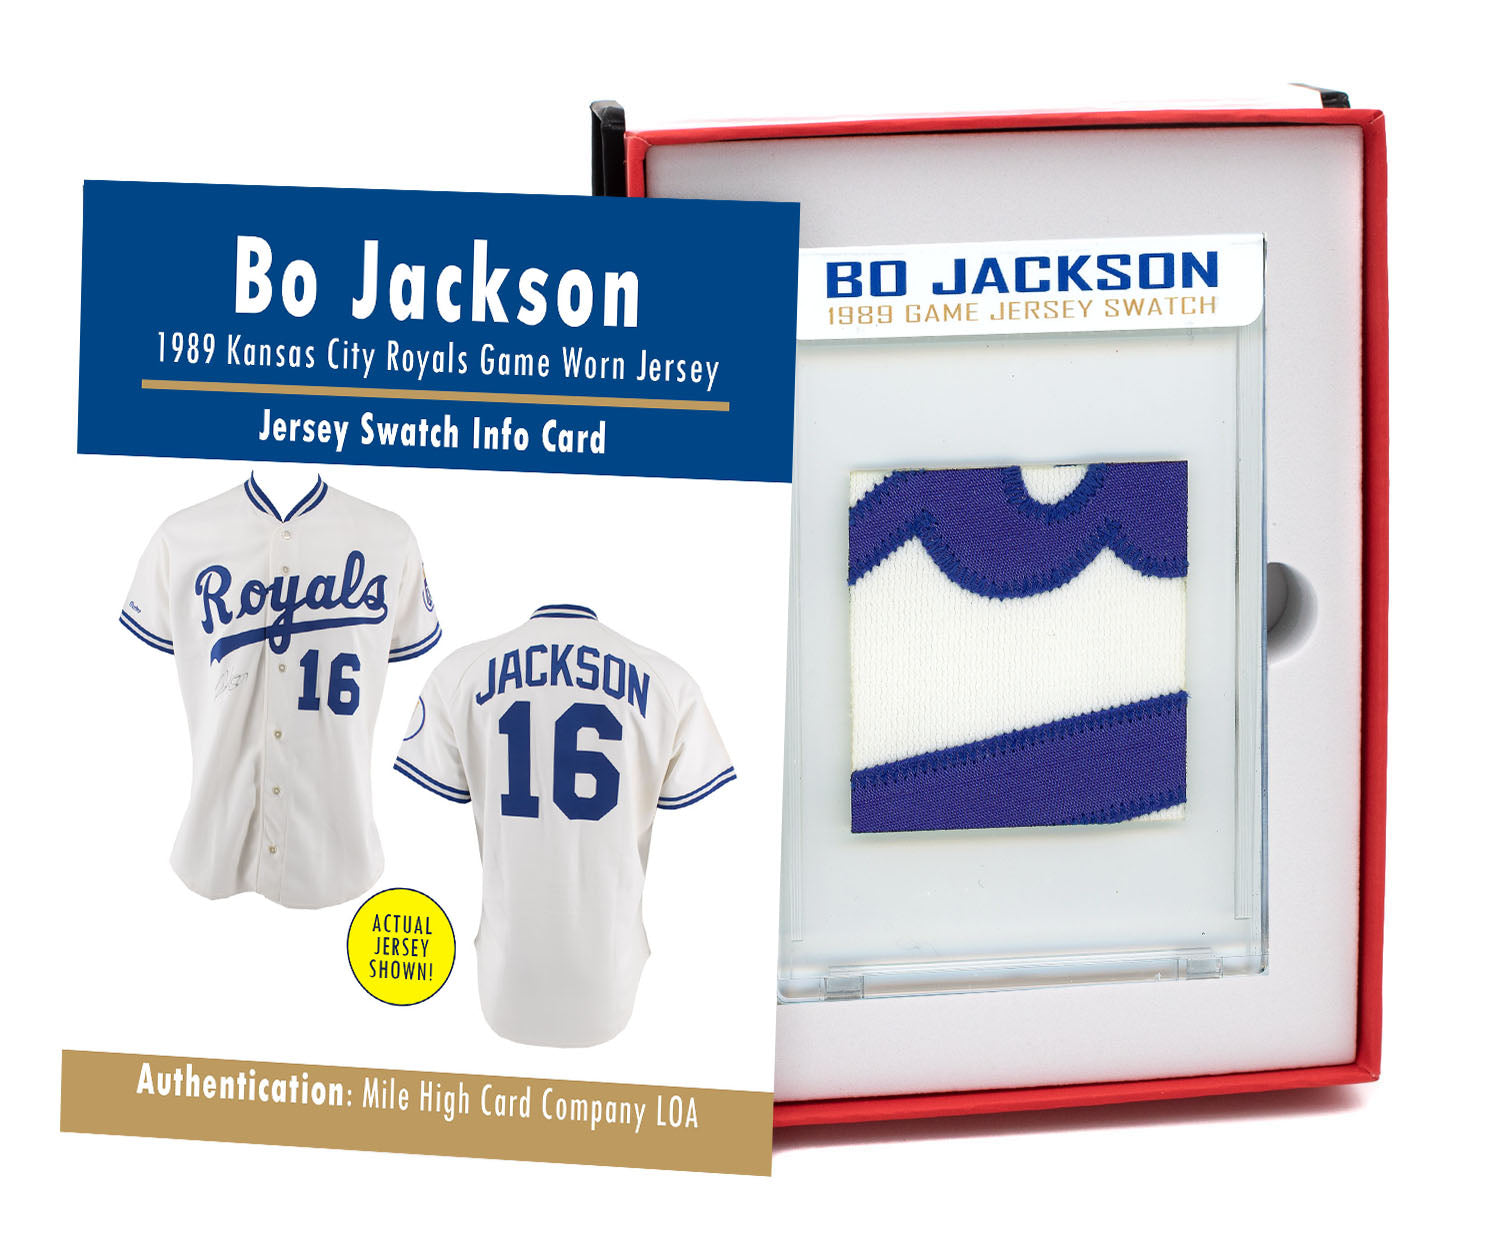 BO JACKSON 1989 KC ROYALS GAME WORN JERSEY MYSTERY SEALED SWATCH BOX!